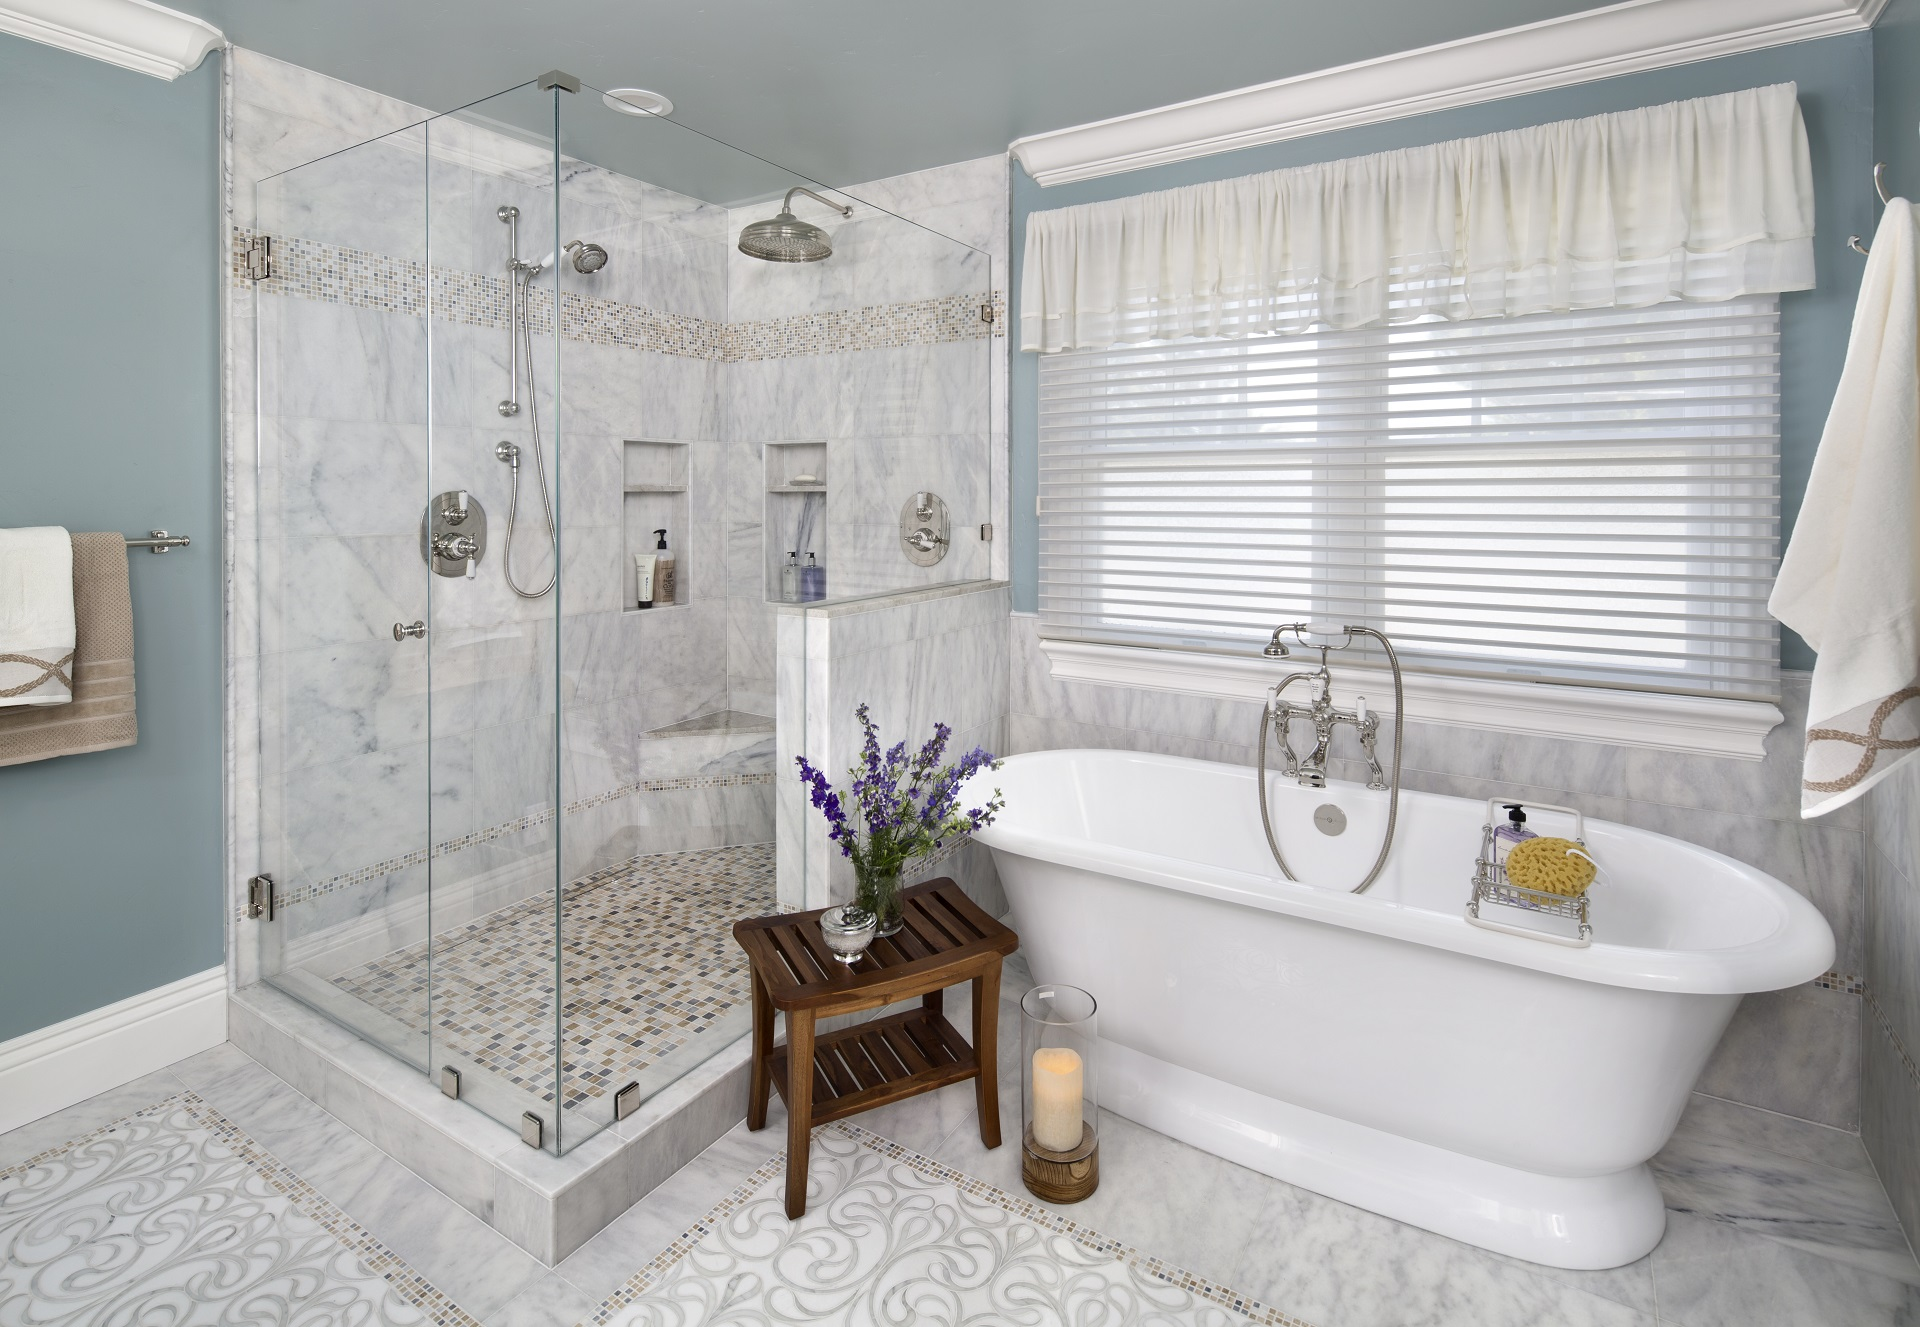 The Glass Enclosed Shower And Freestanding Tub For Master Bathroom Remodel By Valley Home